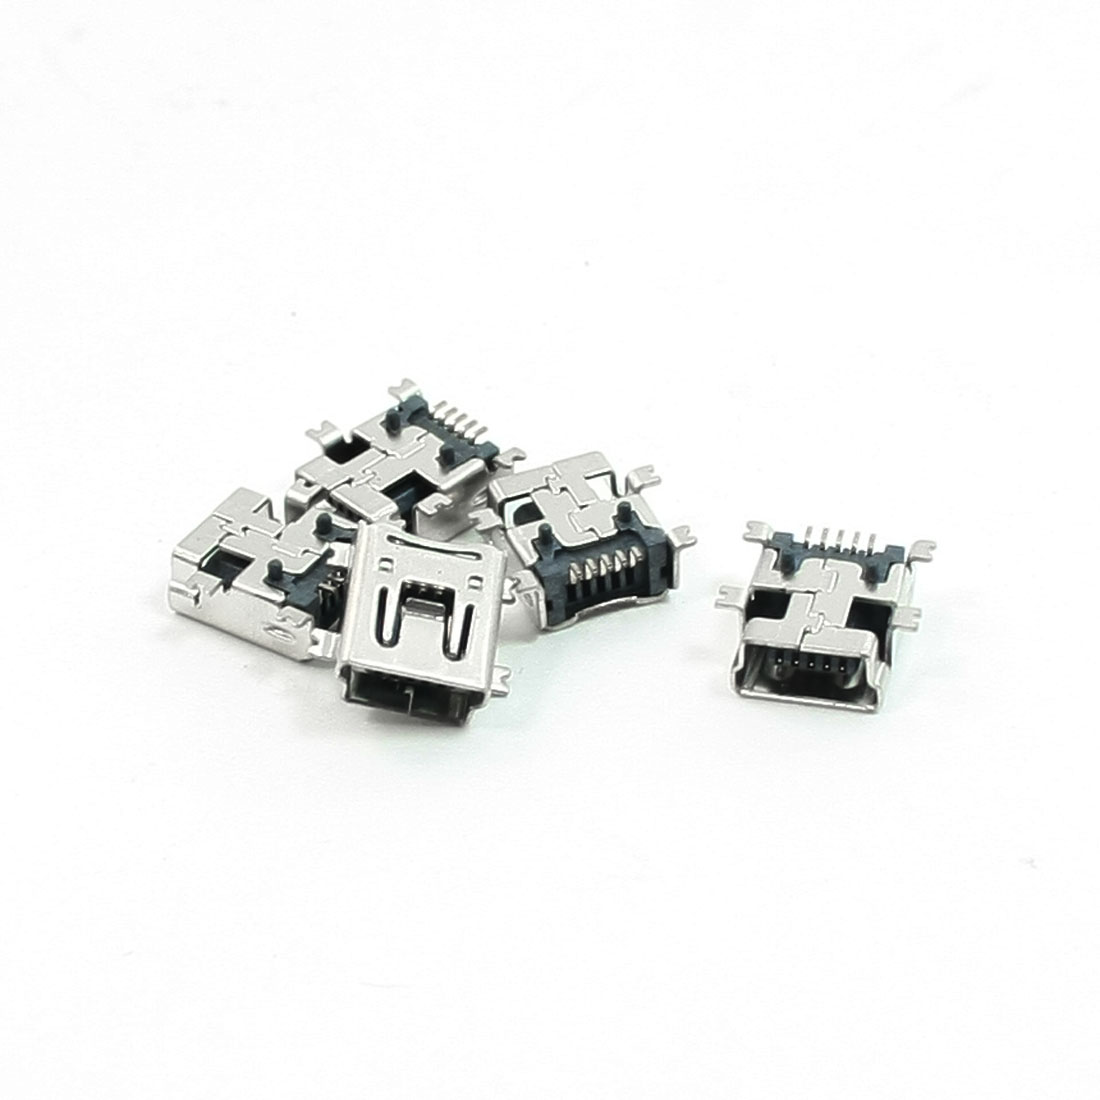 5 Pcs SMT PCB Mounting 5Pin Mini USB Female Connectors Jacks